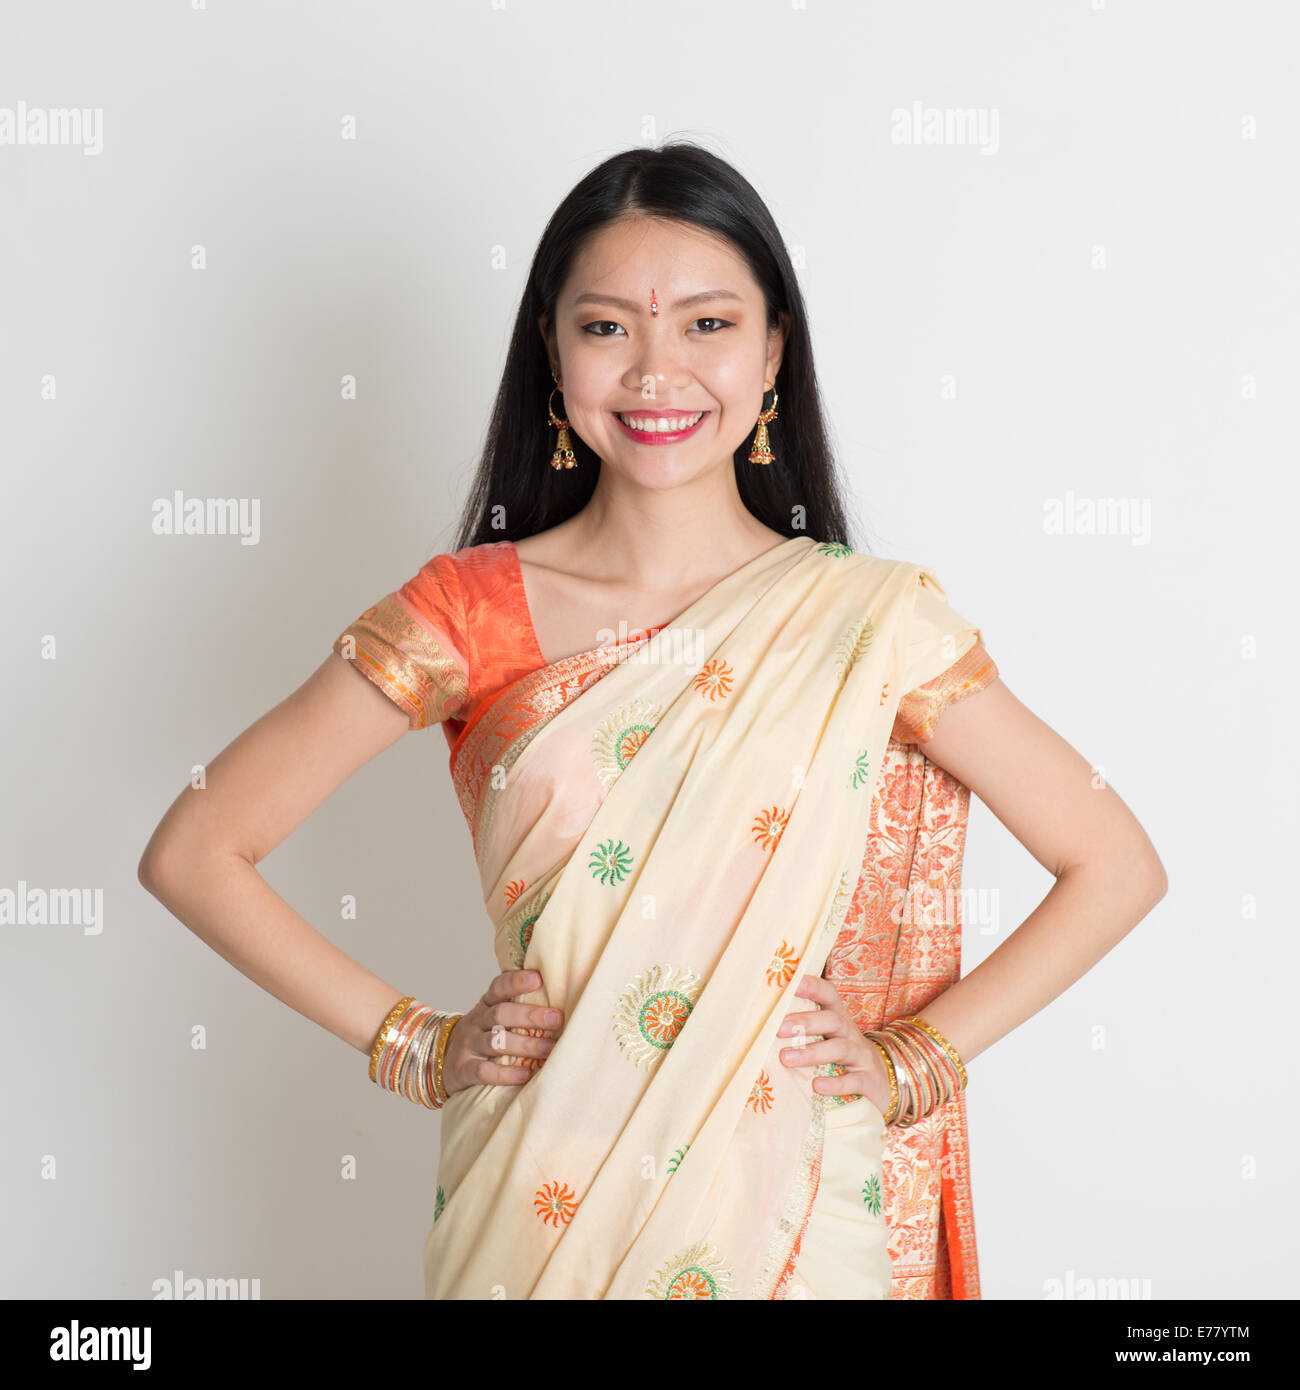 Portrait of confident Indian girl in sari smiling over grey background. - Stock Image